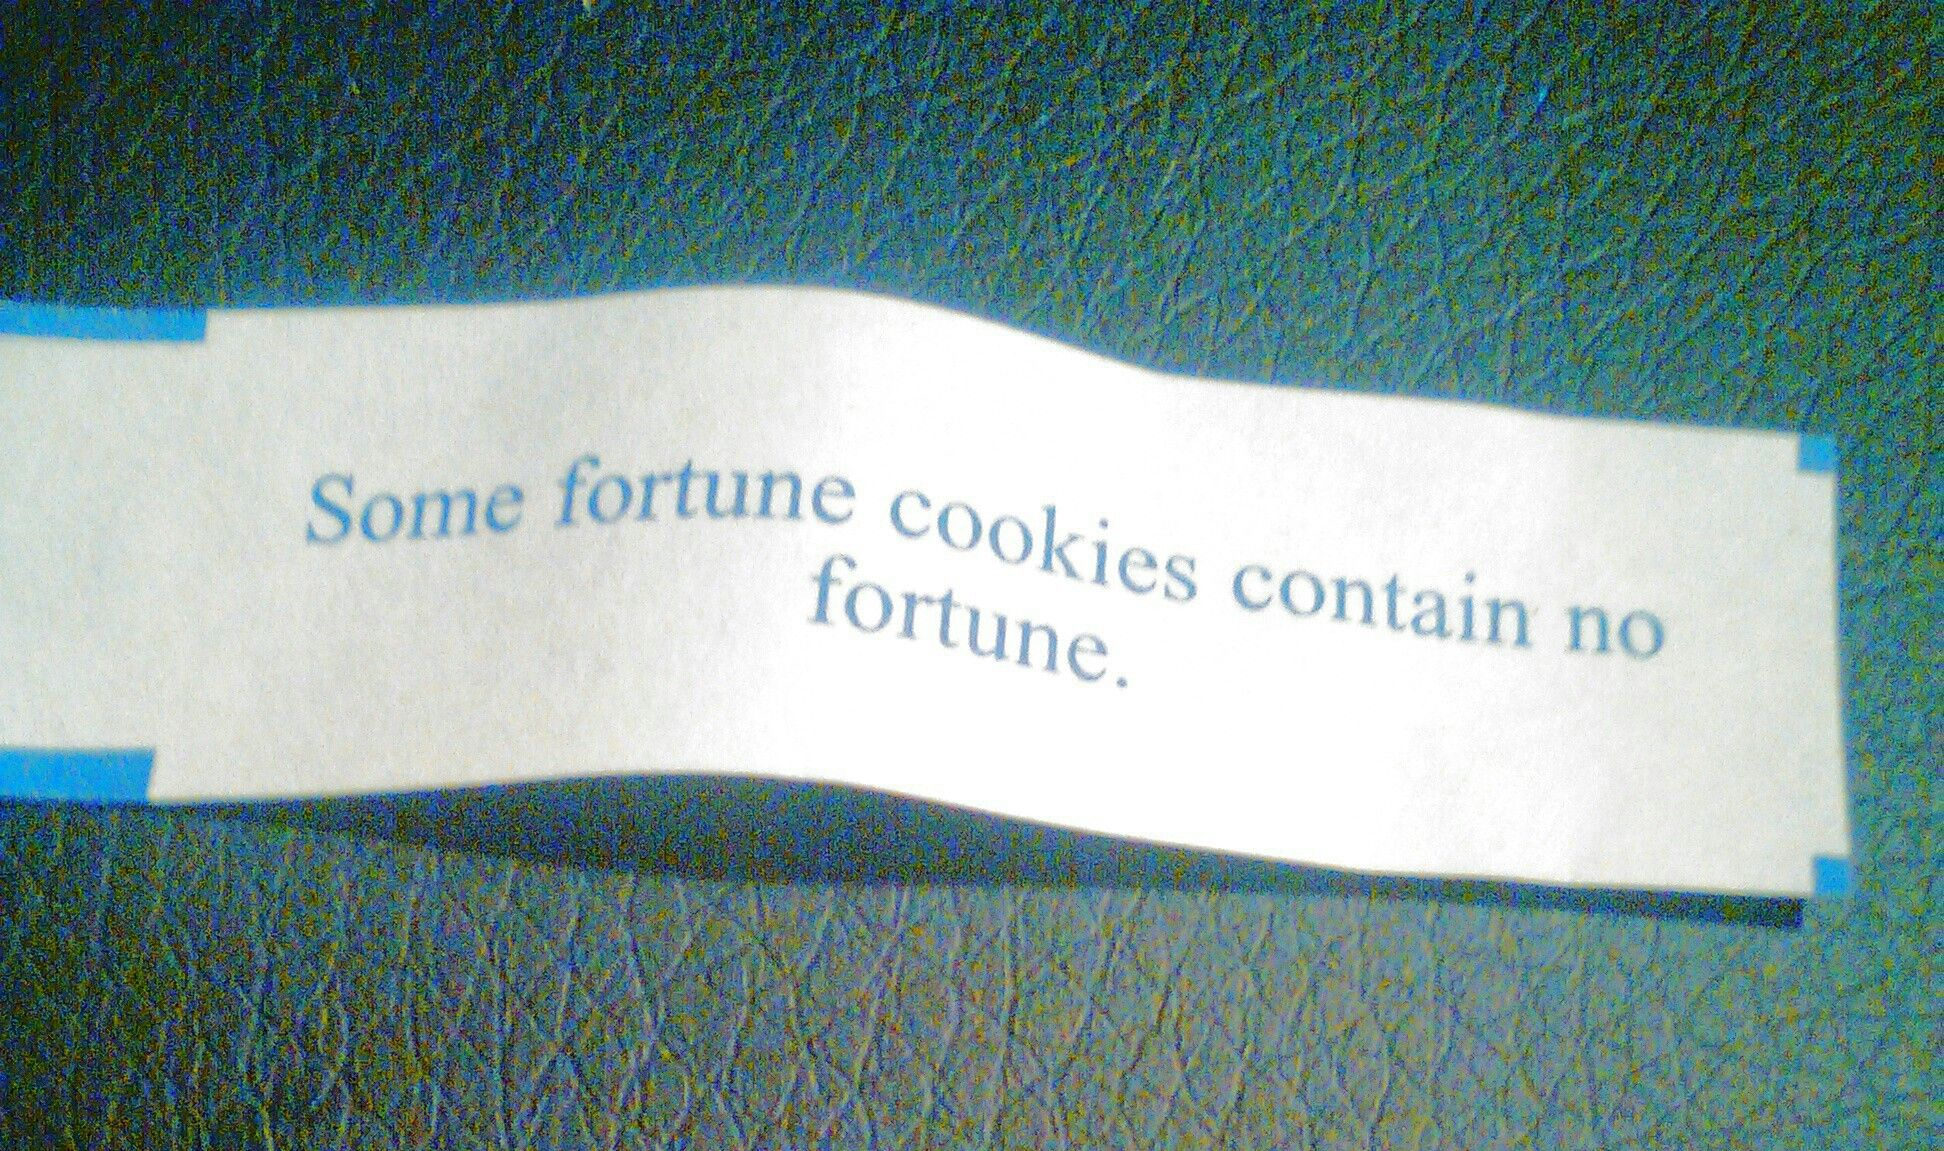 (」゚ロ゚)」 / WHERES MY FORTUNE?!